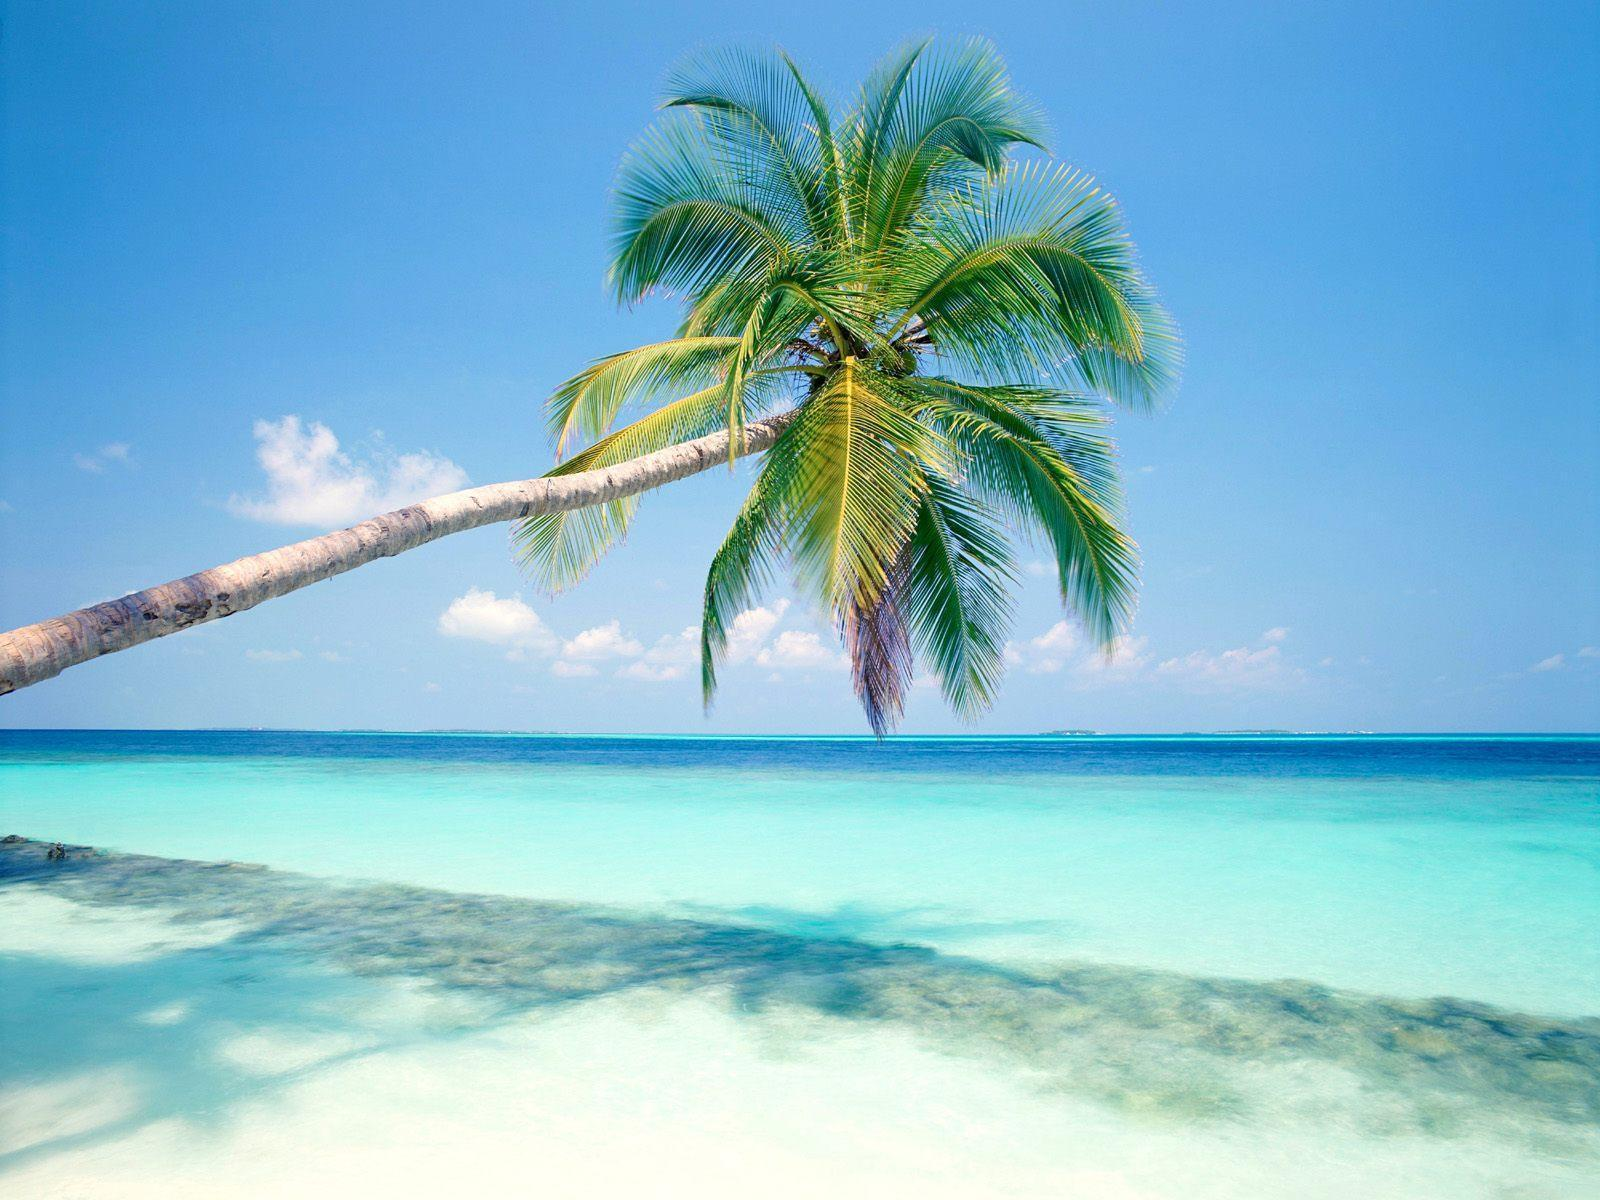 Tropical Island Desktop Wallpapers 1600x1200